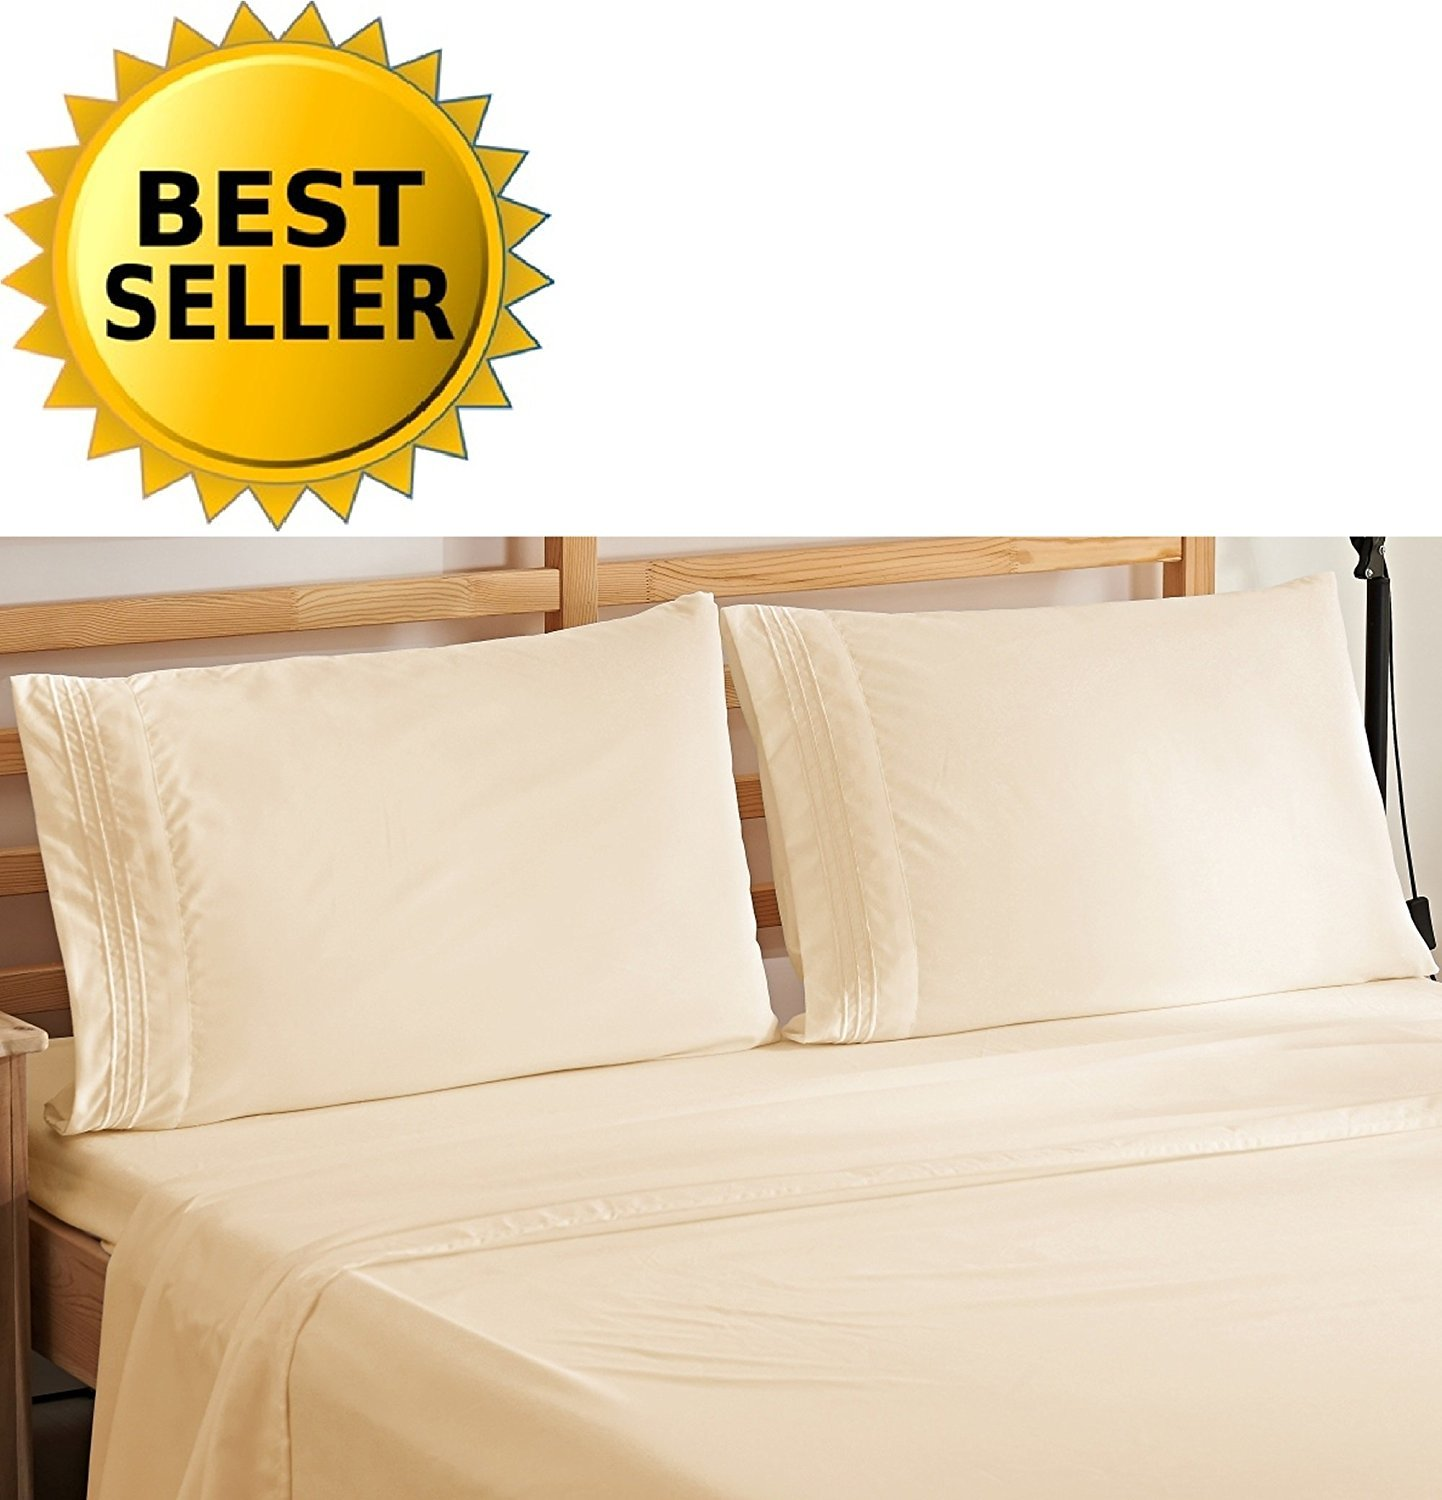 Elegant Comfort Bedding Luxury 4-Piece Bed Sheet Set